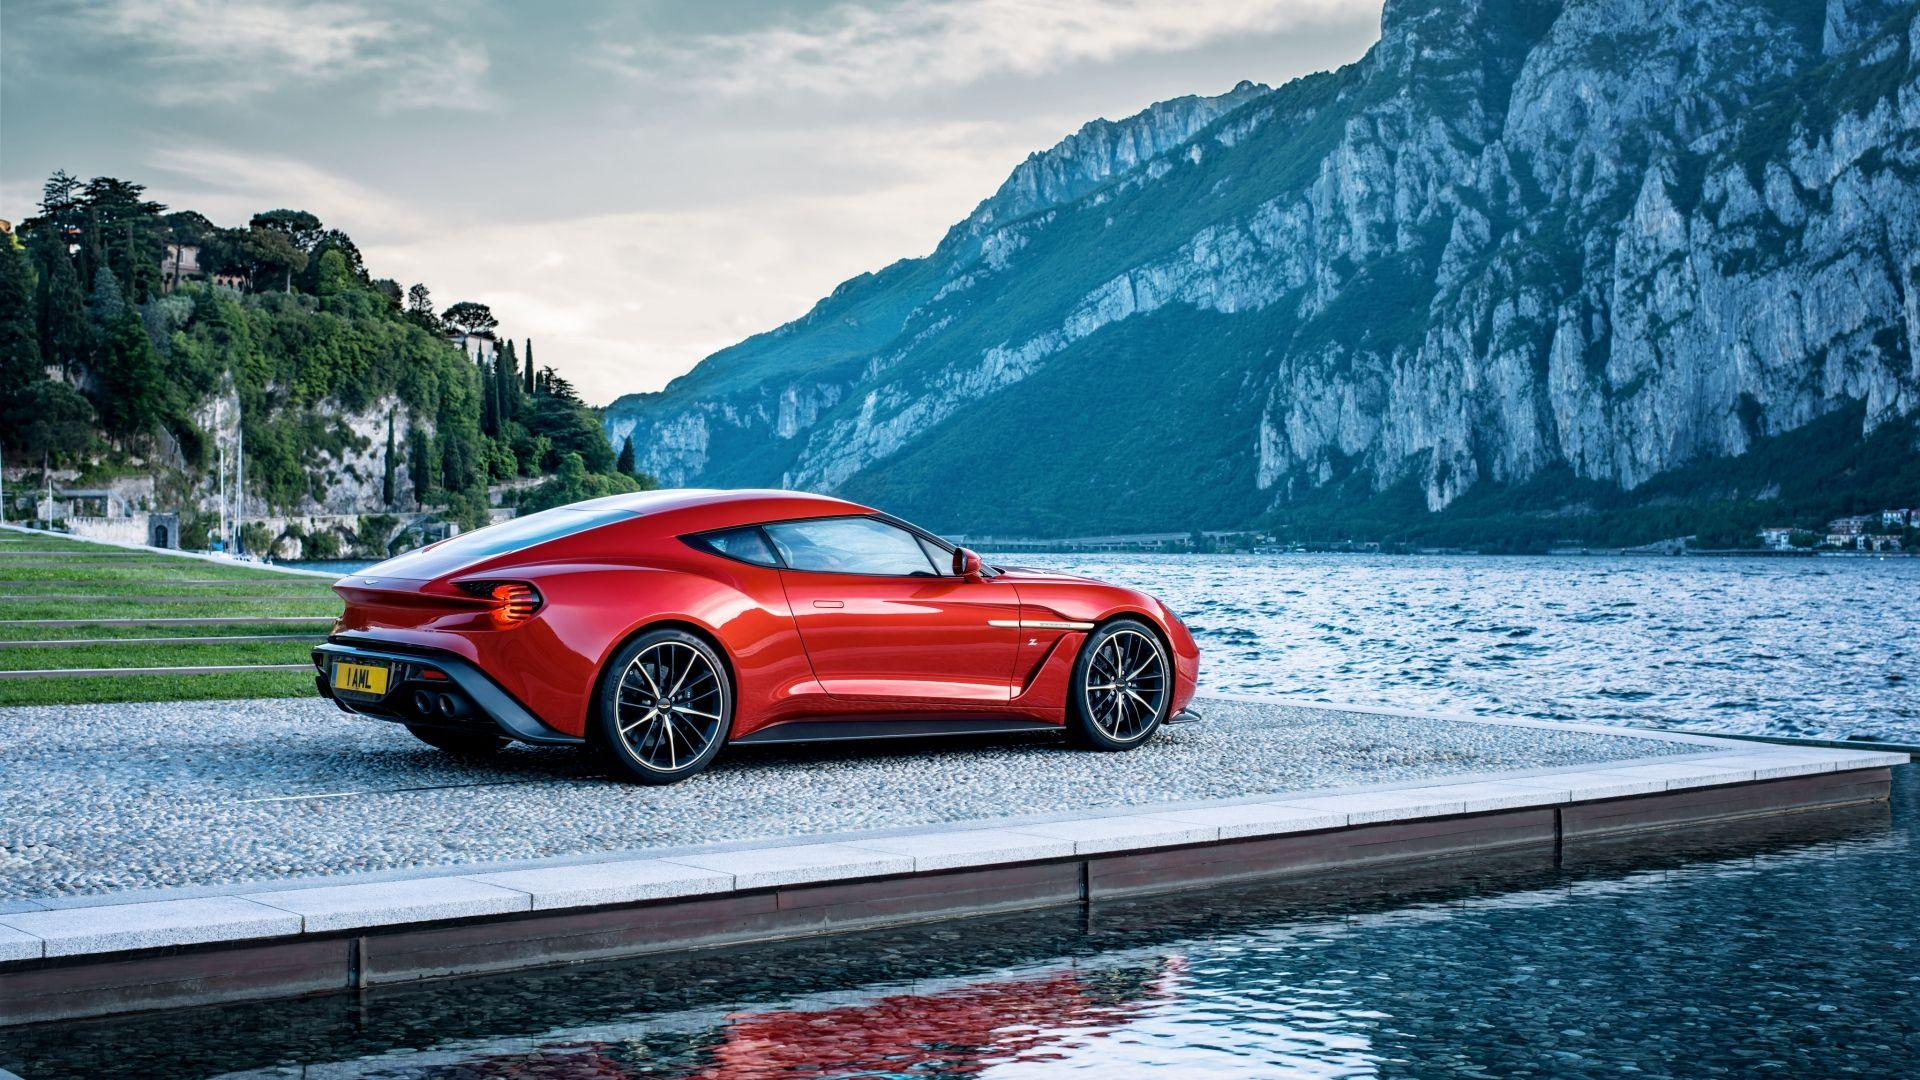 Full HD 1080p Aston martin Wallpapers HD, Desktop Backgrounds